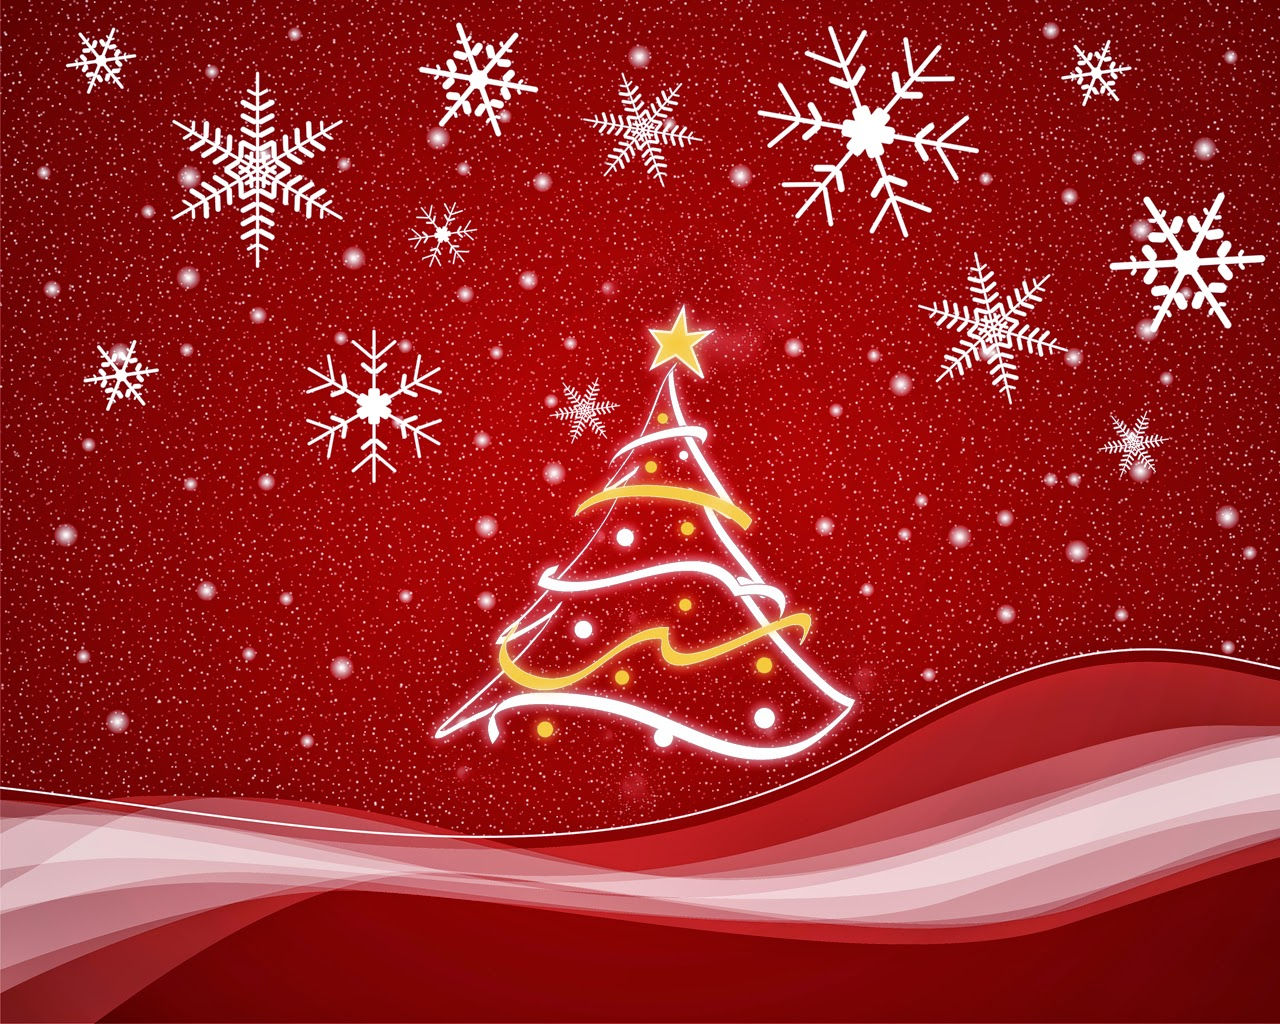 Christmas-tree-abstract-design-image-with-snow-flakes-red-background-picture.jpg